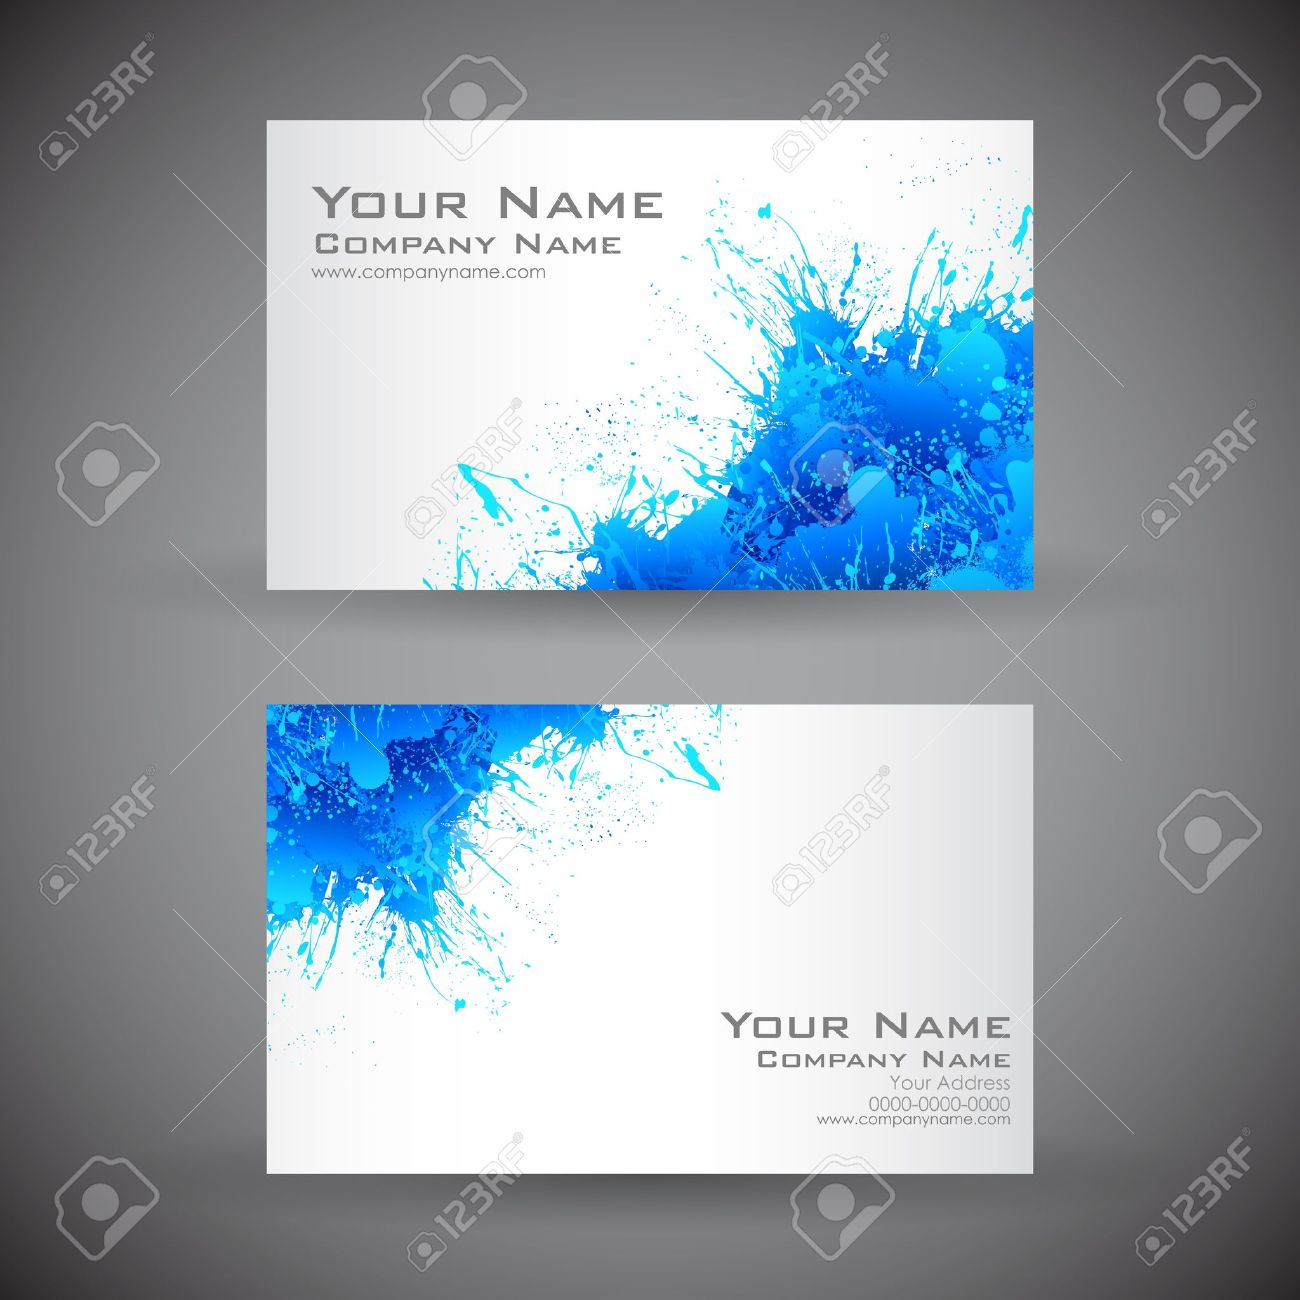 Illustration Of Front And Back Of Corporate Business Card Royalty ...